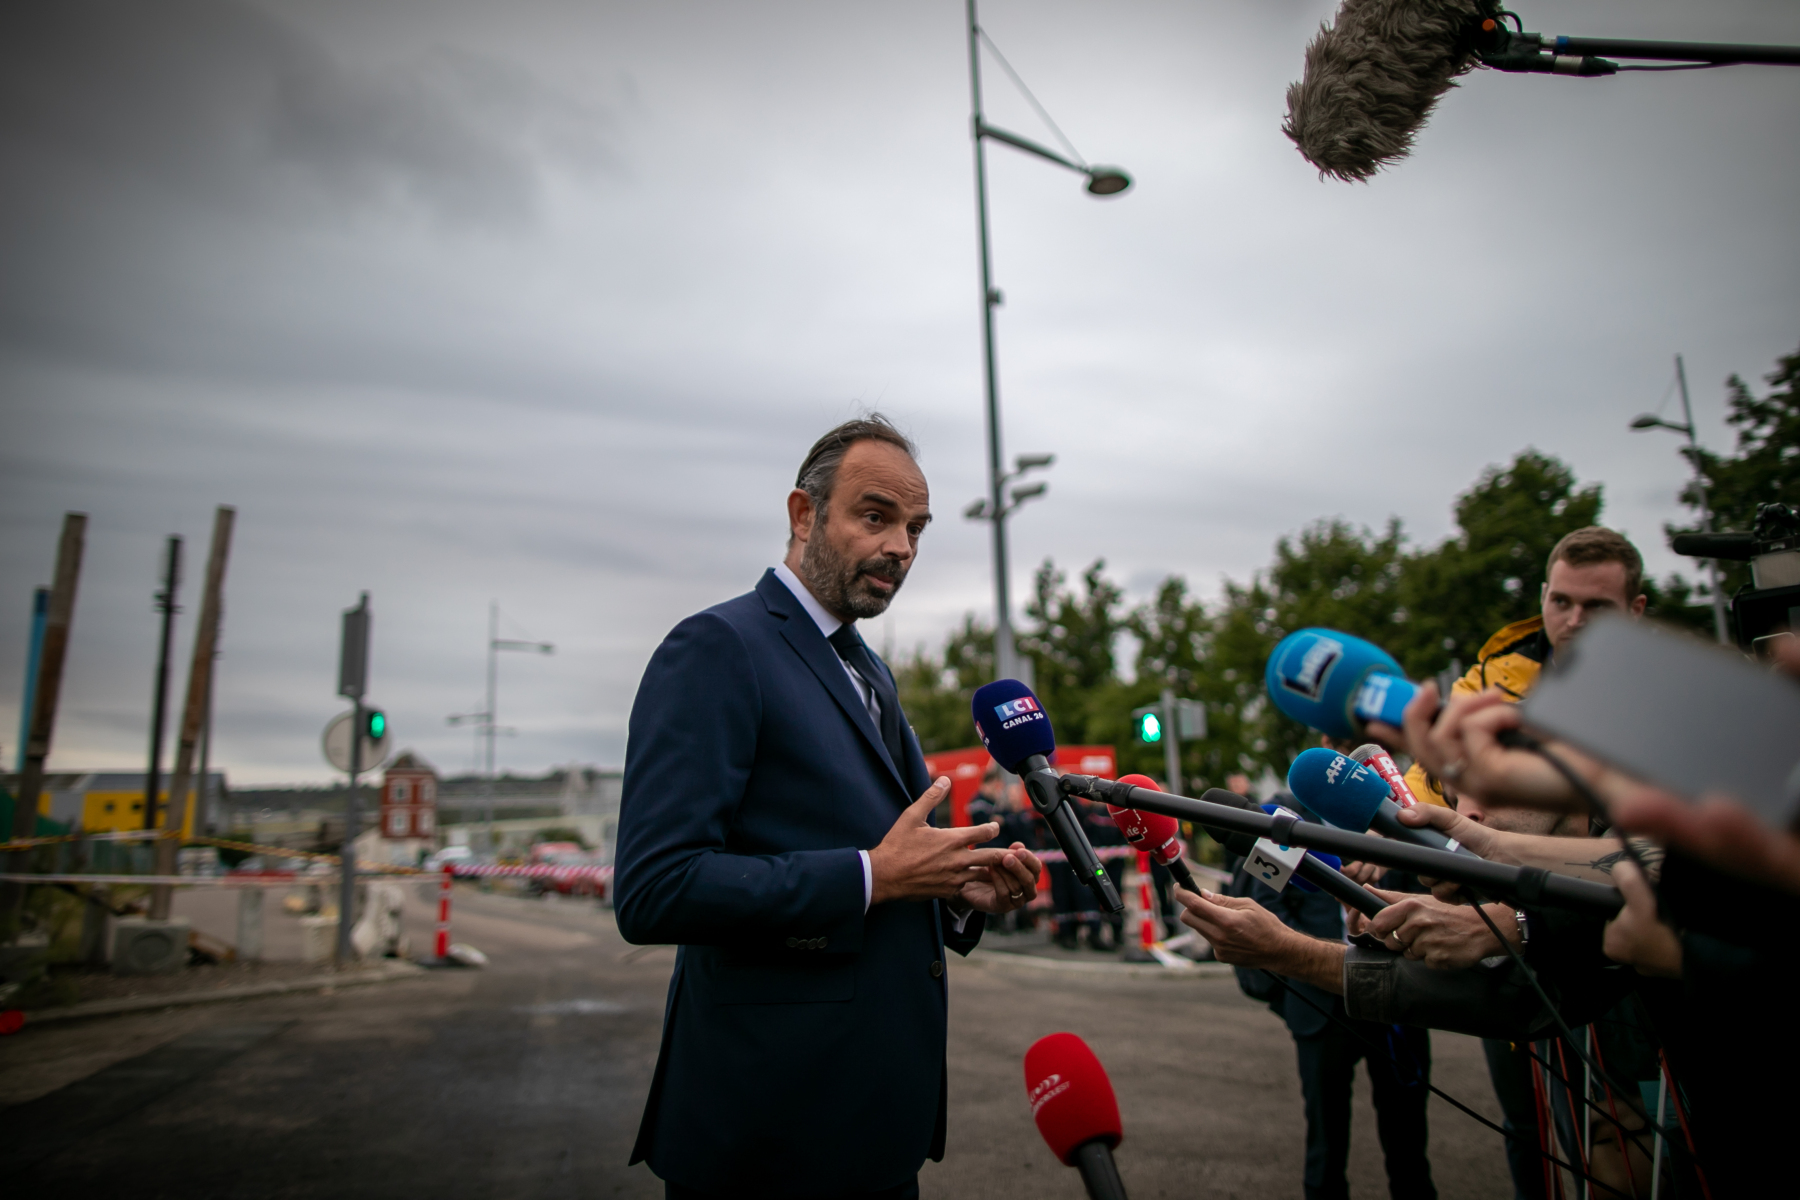 Prime Minister Edouard Philippe gives a press conference at the Lubrizol factory in Rouen, Normandy, on September 30, 2019.